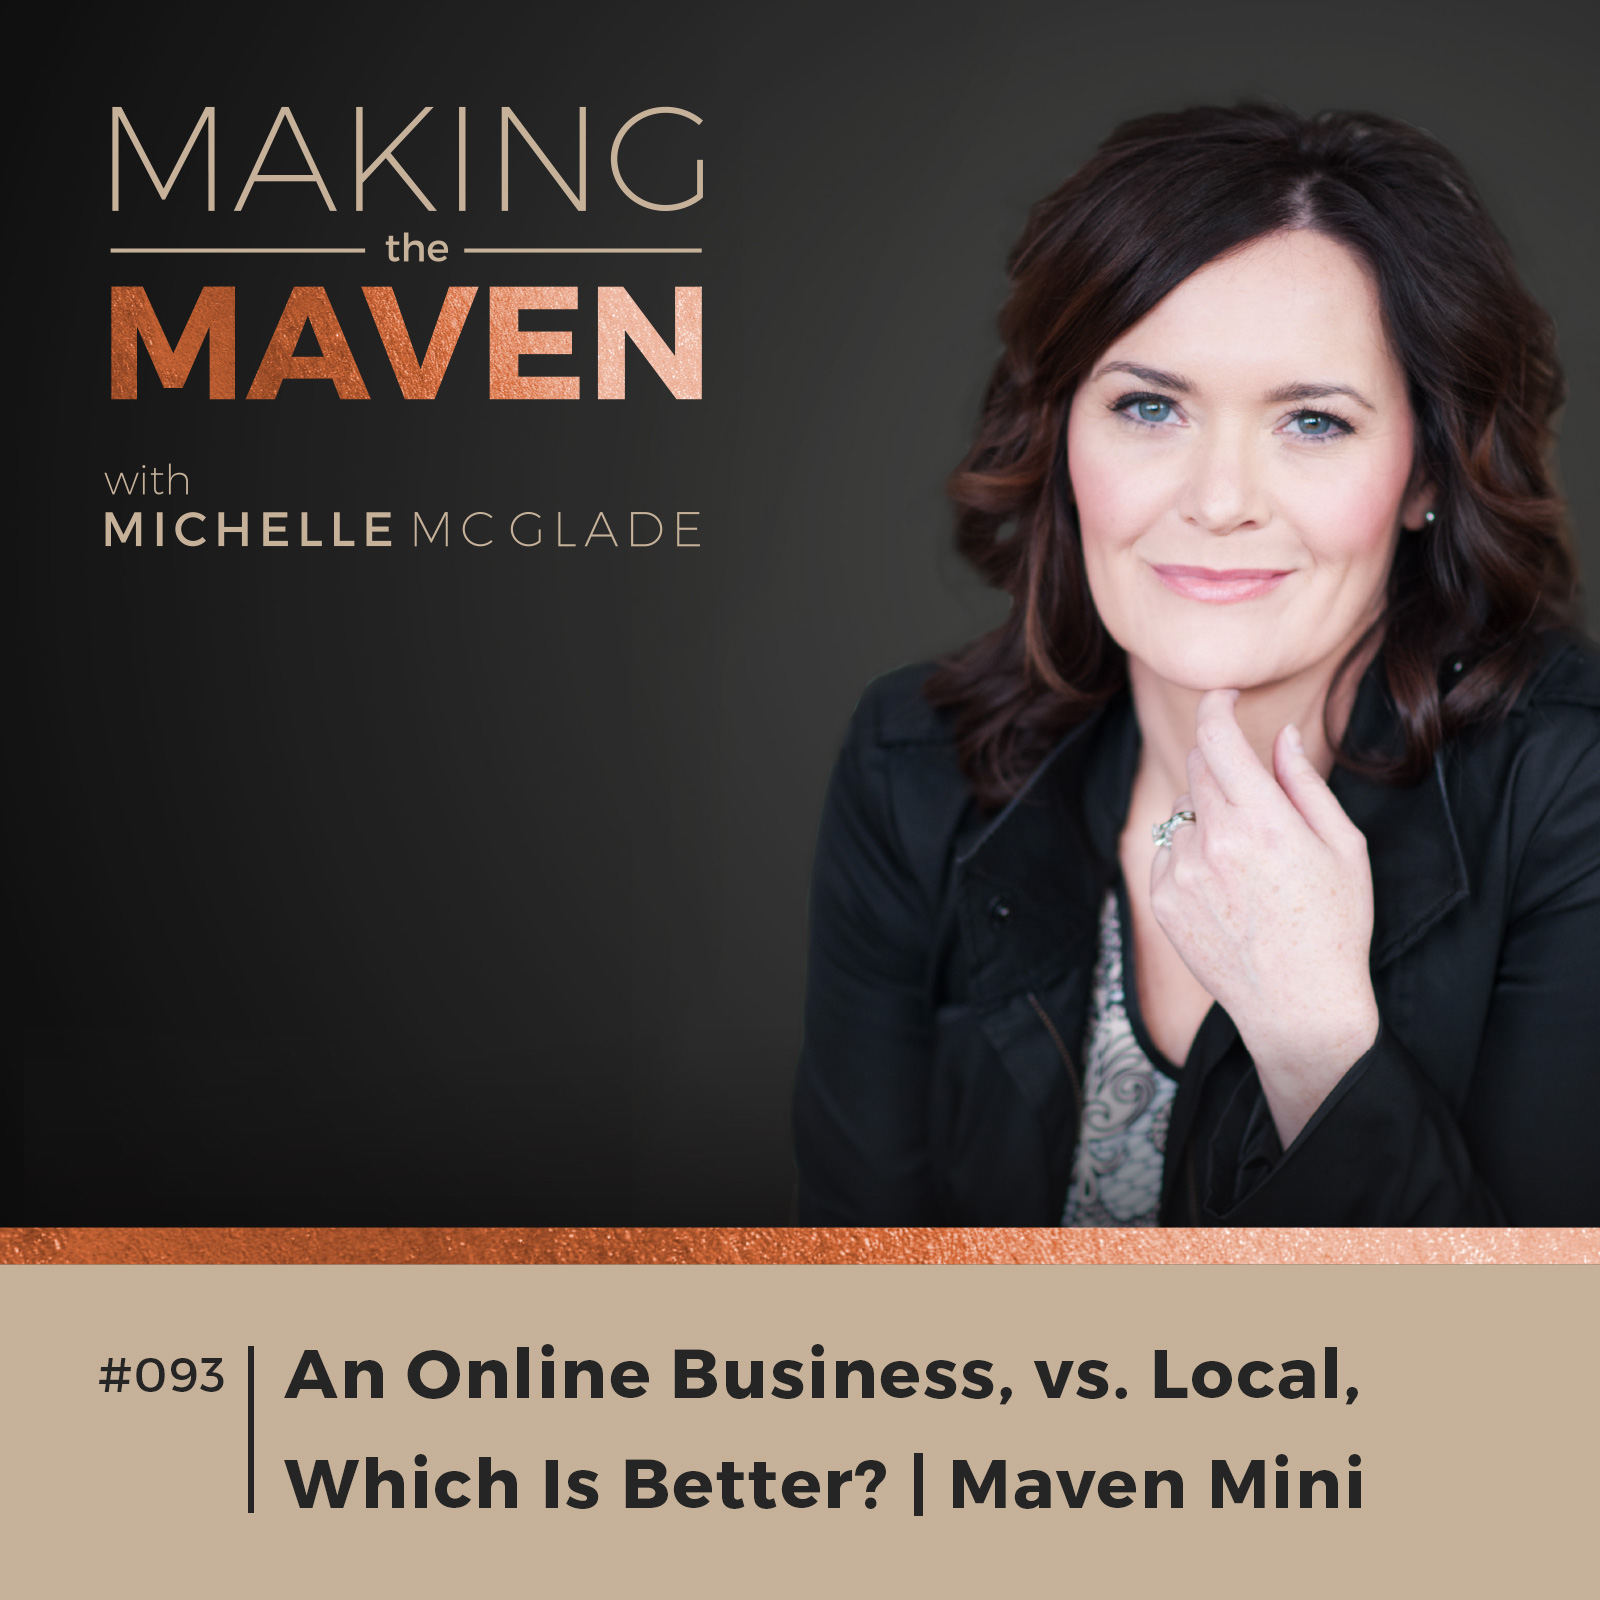 Online Business or Local, Which Is Better